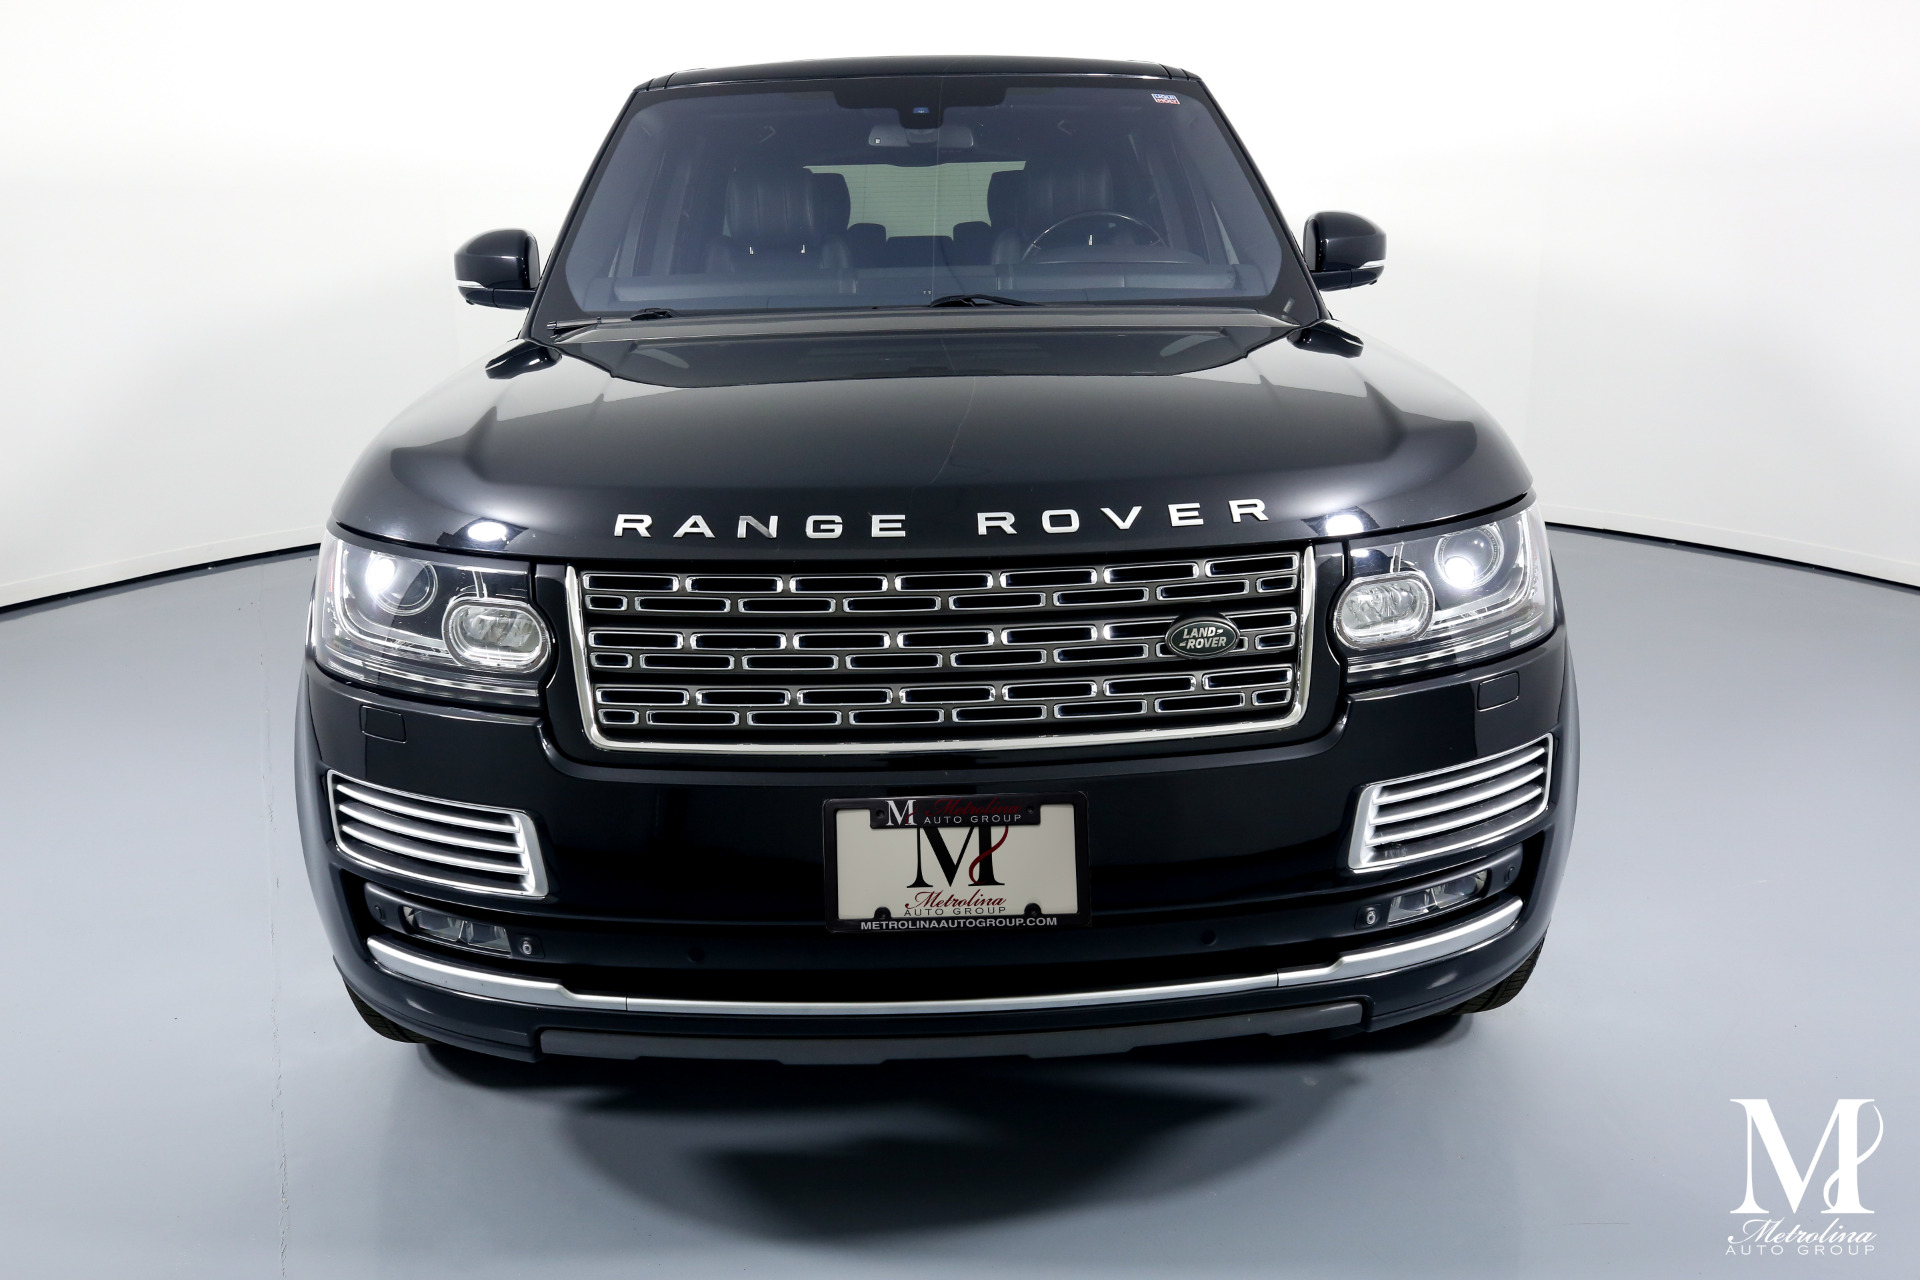 Used 2015 Land Rover Range Rover Autobiography Black LWB for sale $74,996 at Metrolina Auto Group in Charlotte NC 28217 - 3